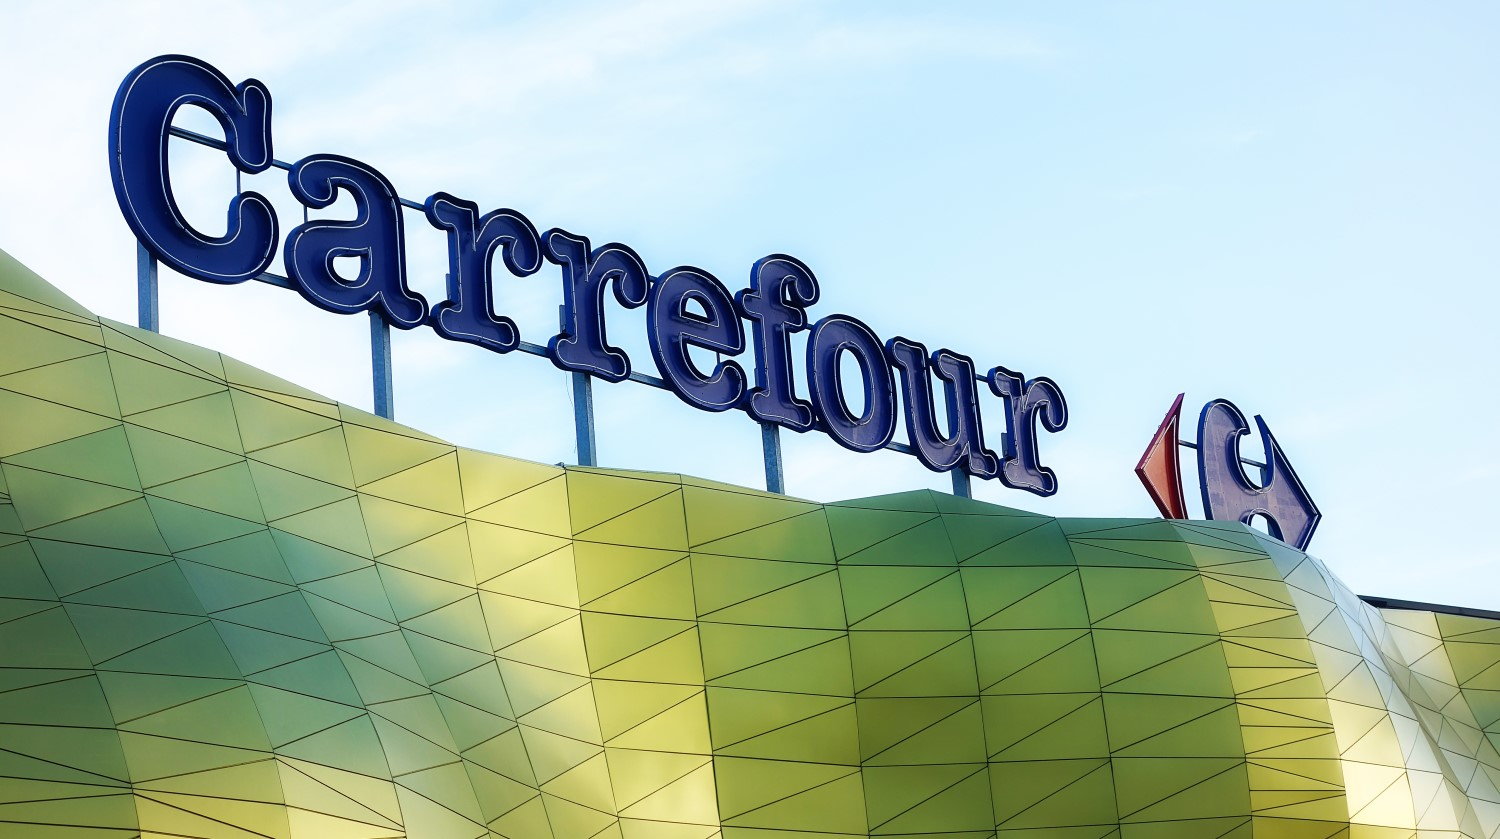 Retail Giant Carrefour Saw Sales Boost From Blockchain Tracking